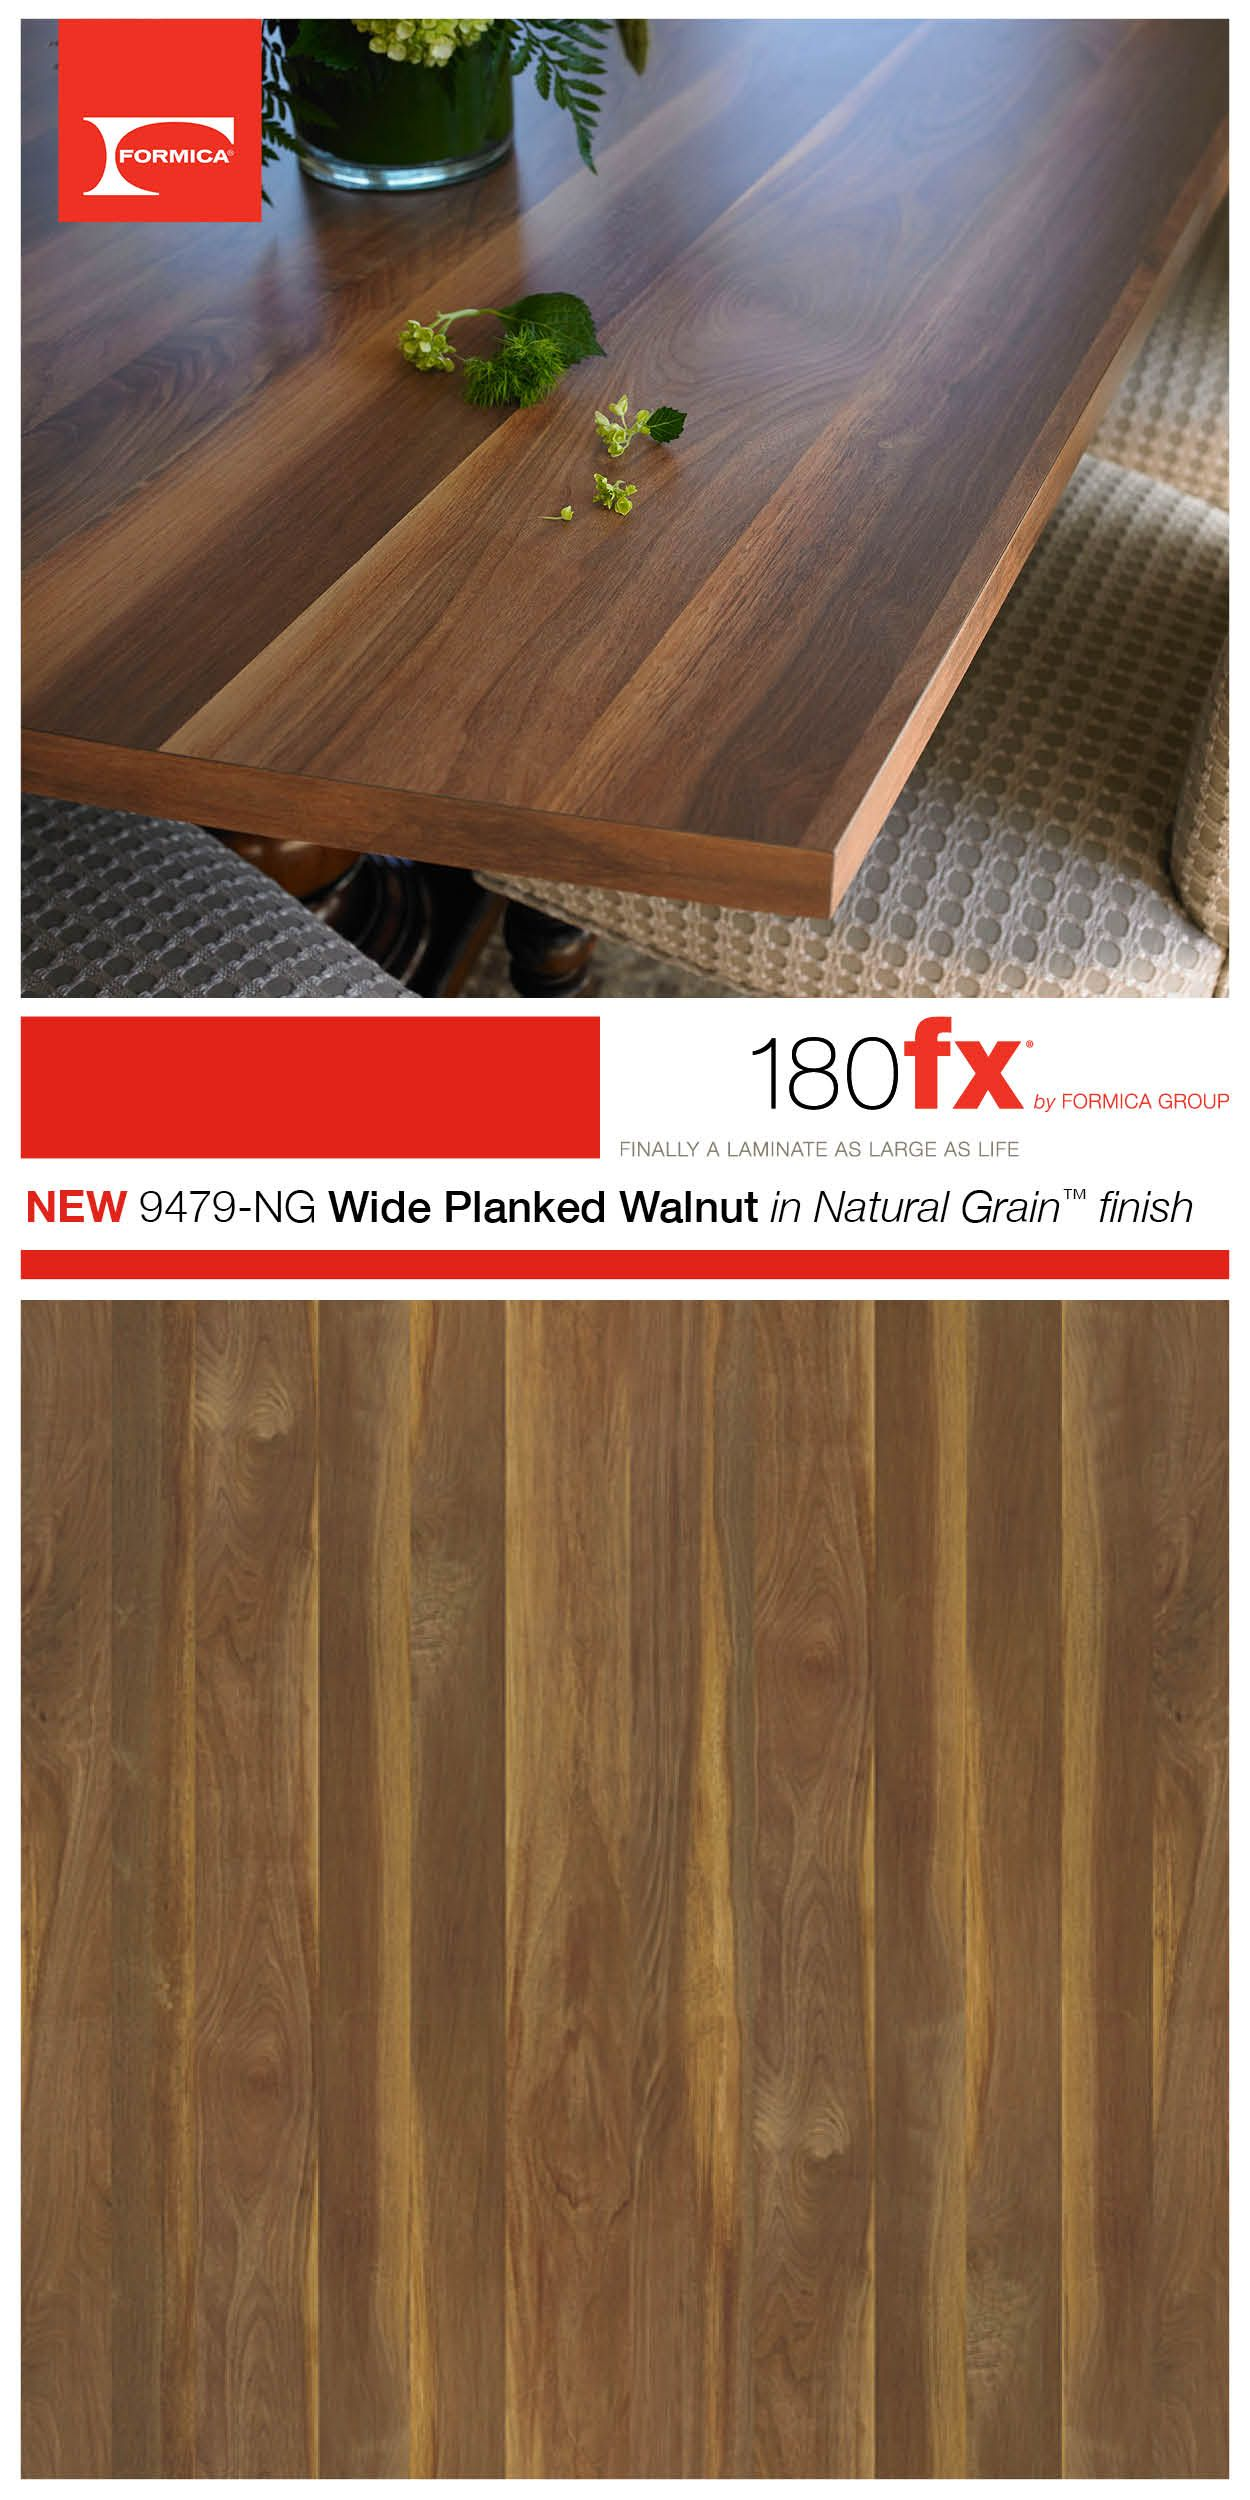 By Mixing Planks Of Walnut Heartwood And Sapwood A Character Planked Walnut Pattern Is Achieved